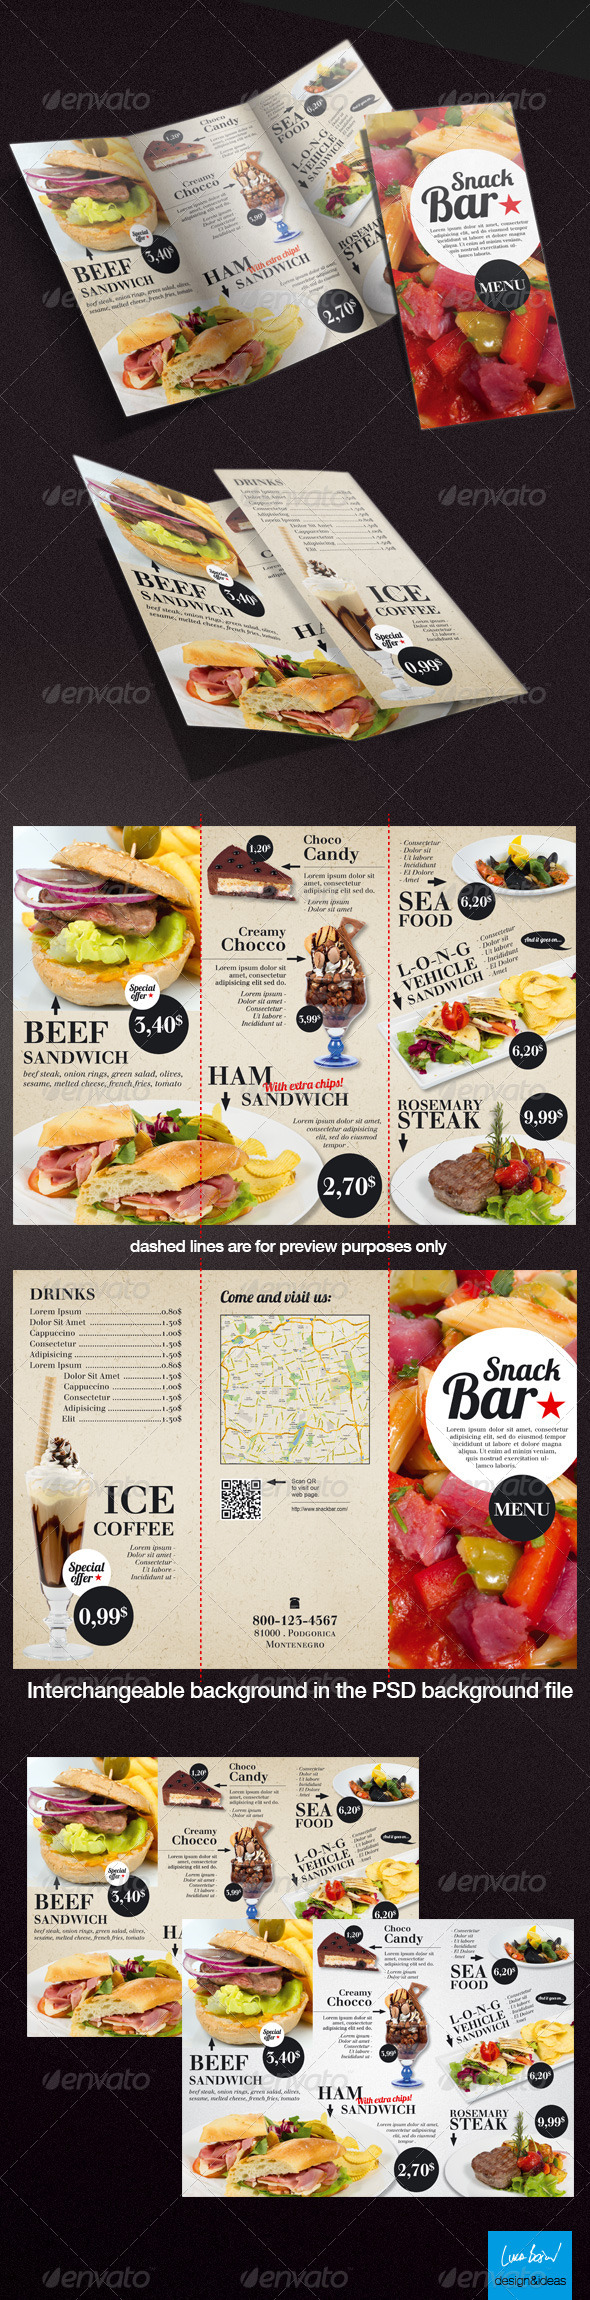 GraphicRiver Tri-Fold A4 Snack Bar Menu 4047593